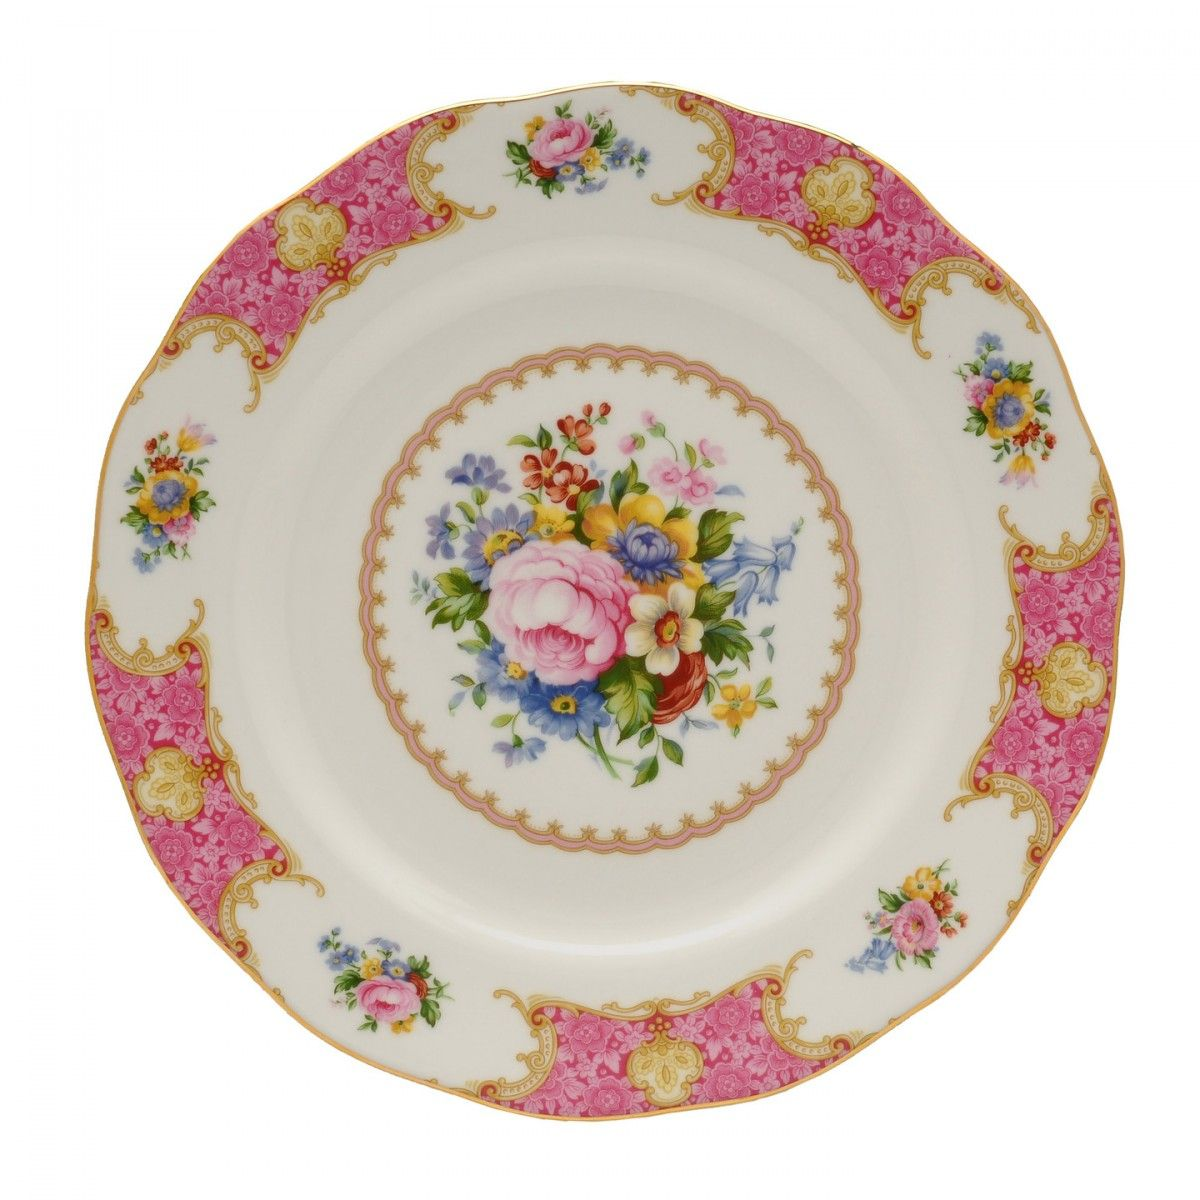 Lady Carlyle Dinner Plate Royal albert, Dinner plates